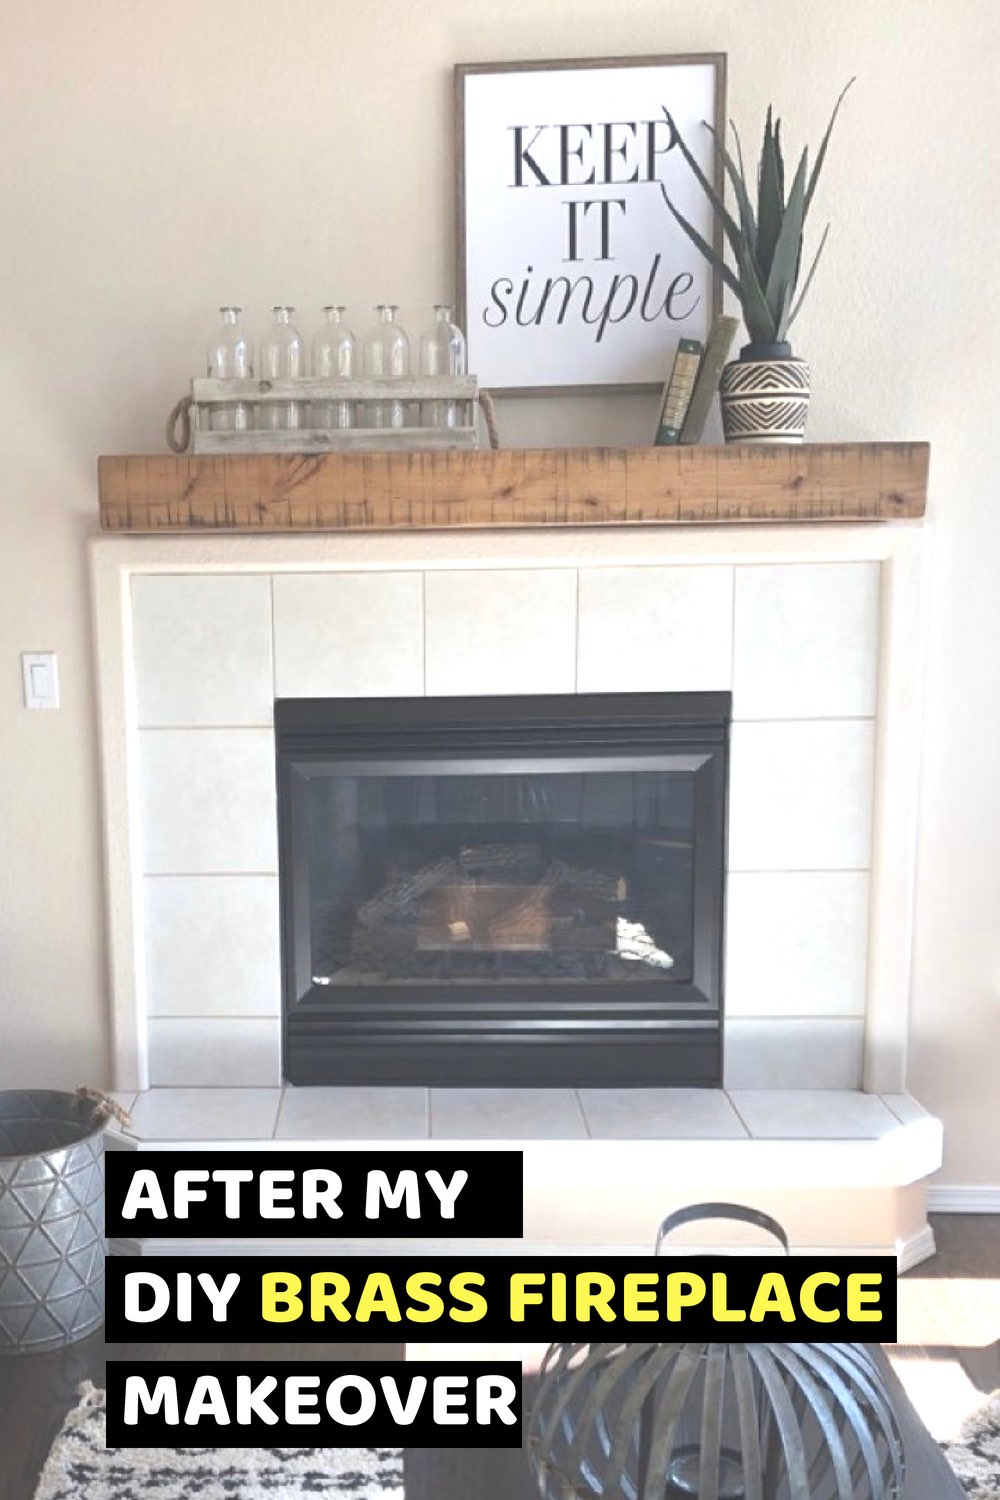 Fireplace mantle ideas | brass Fireplace makeover ideas | #fireplace #homedecor #DIY